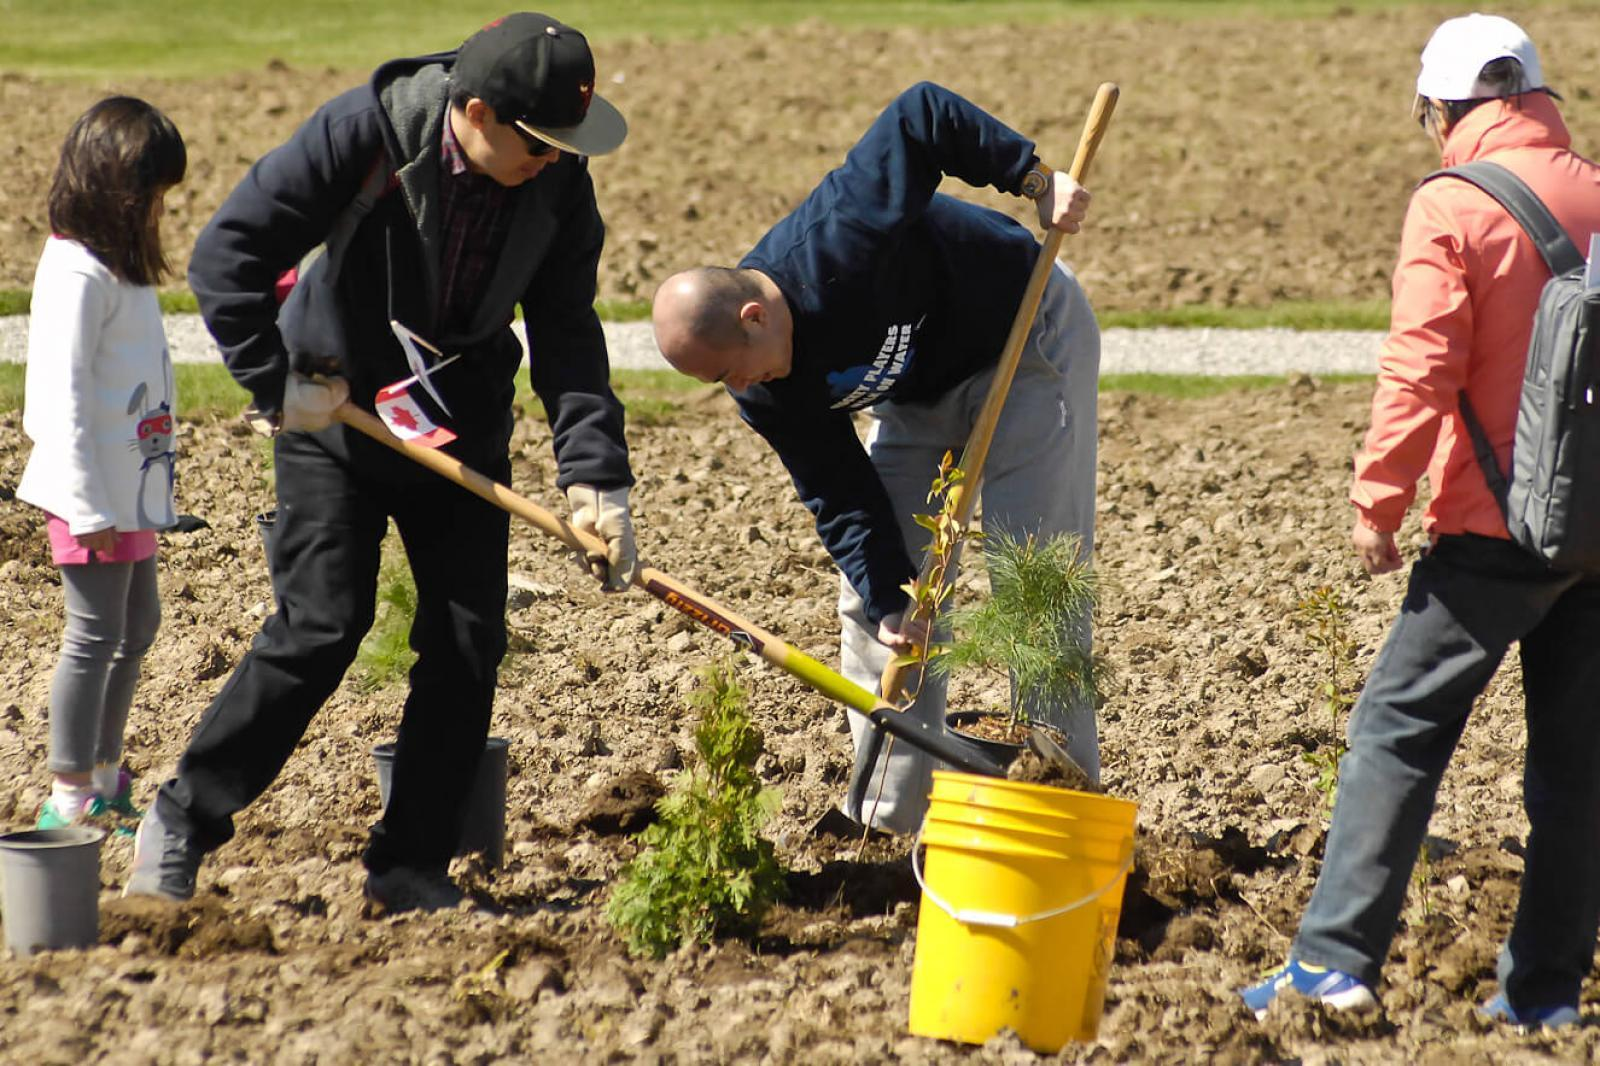 Vineland soil remediation workshop and tree planting for Soil remediation